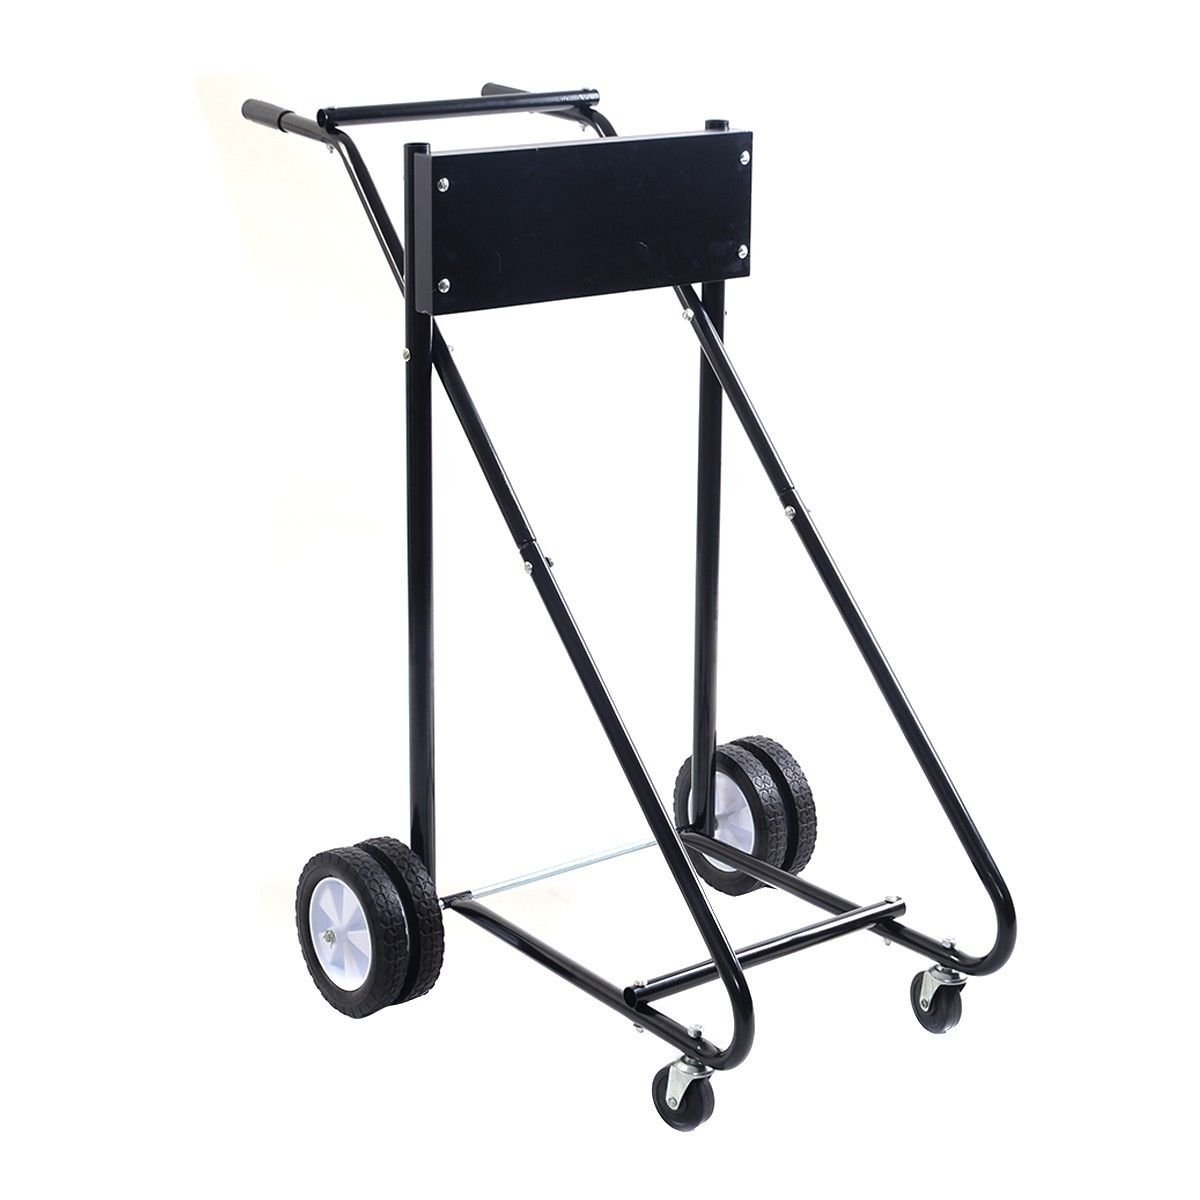 Anofora Boat Motor Stand Carrier Cart Dolly Outboard Storage Pro Heavy Duty 315 LBS